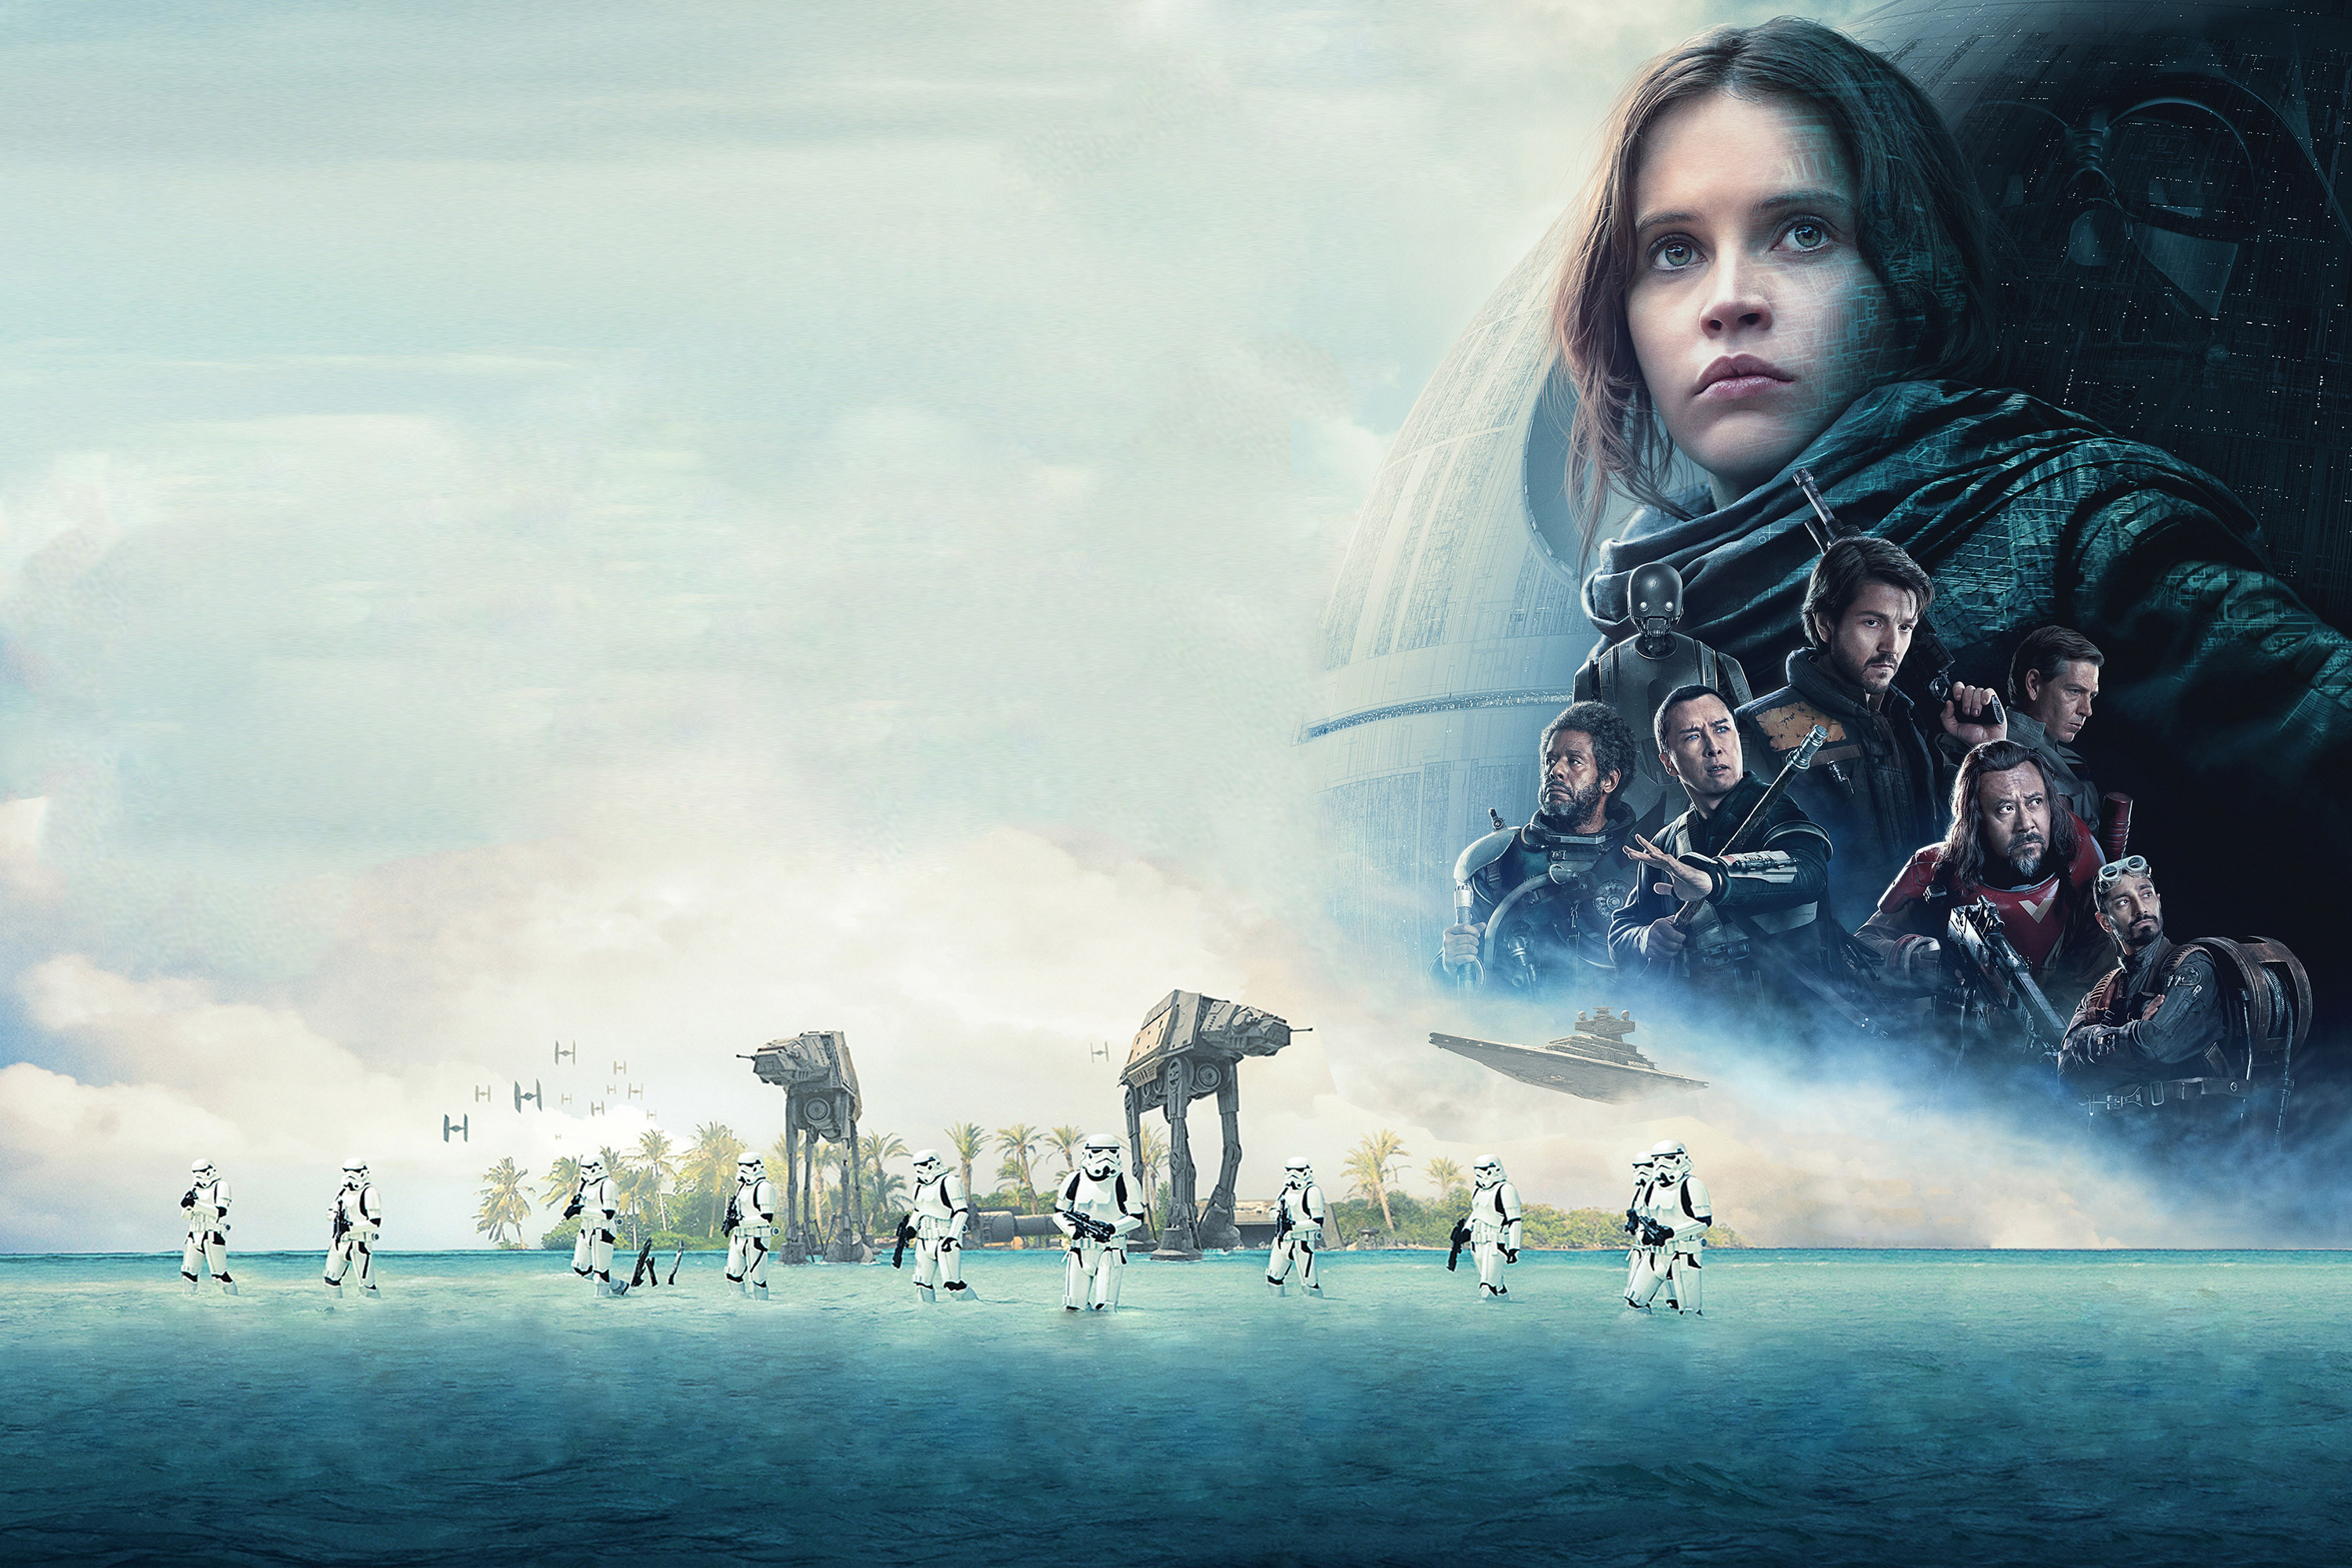 2560x1440 Rogue One A Star Wars Story 2016 1440p Resolution Hd 4k Wallpapers Images Backgrounds Photos And Pictures